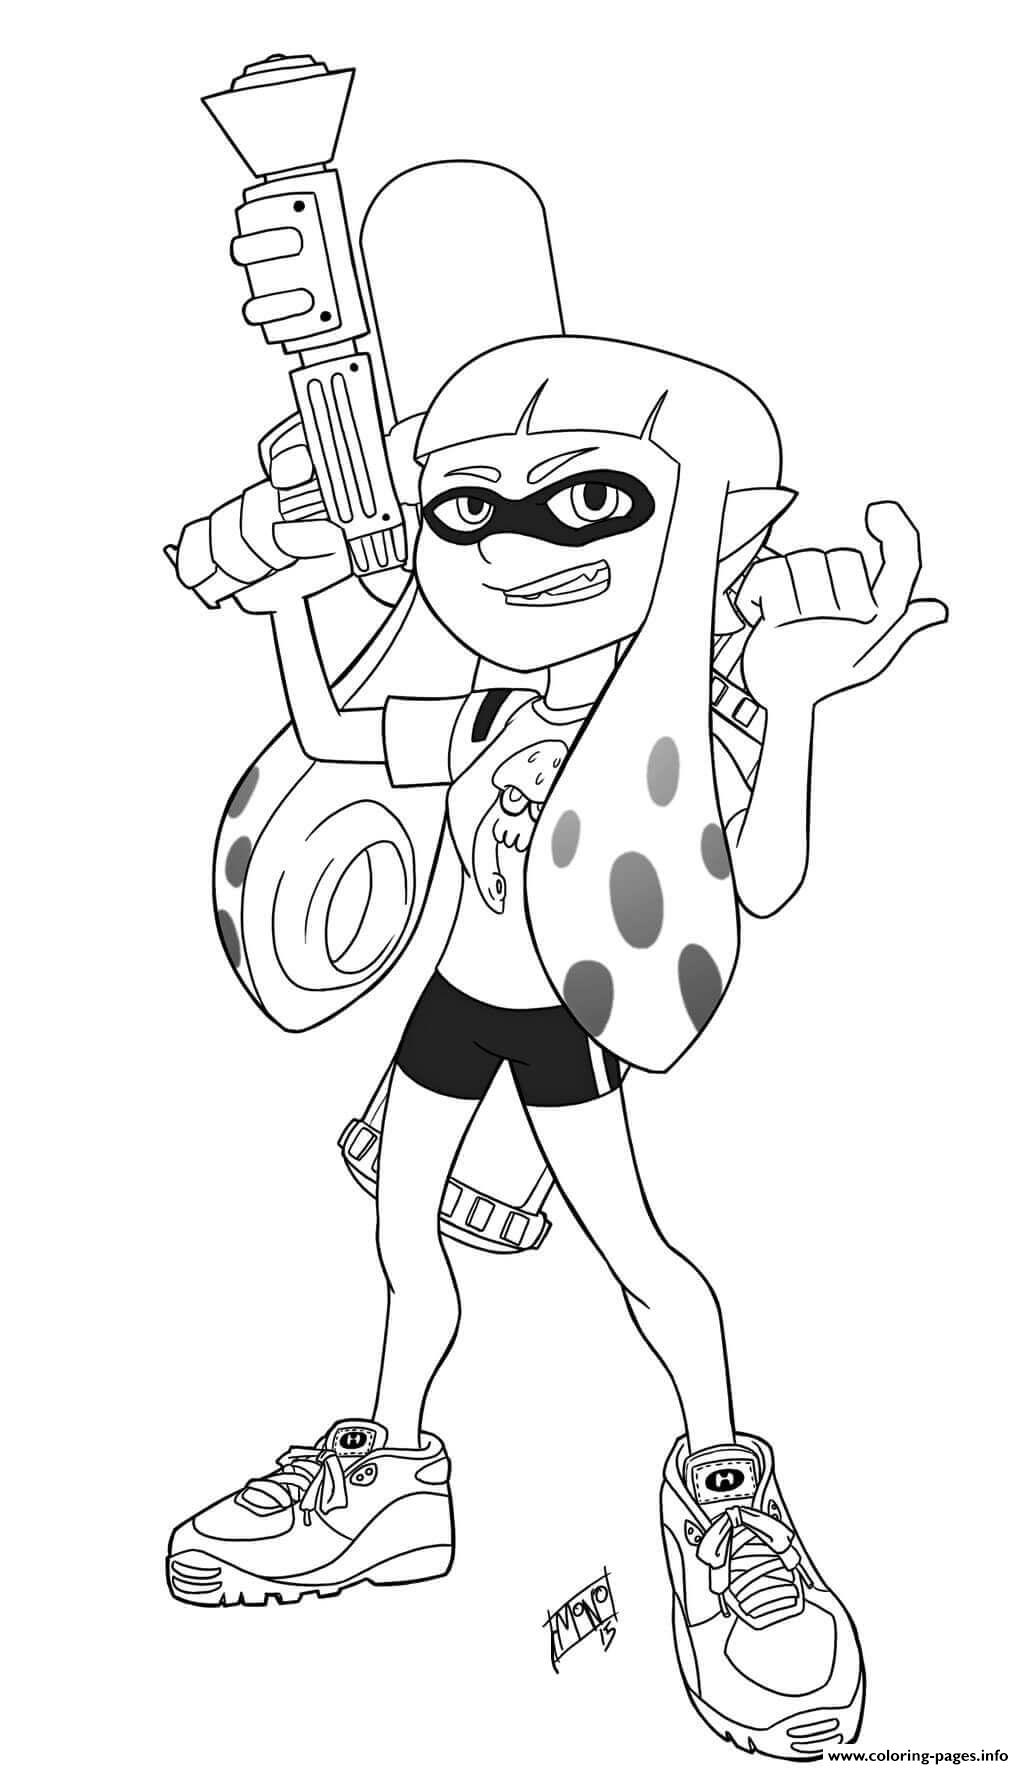 Inklings Can Alternate Between Humanoid And Squid Form